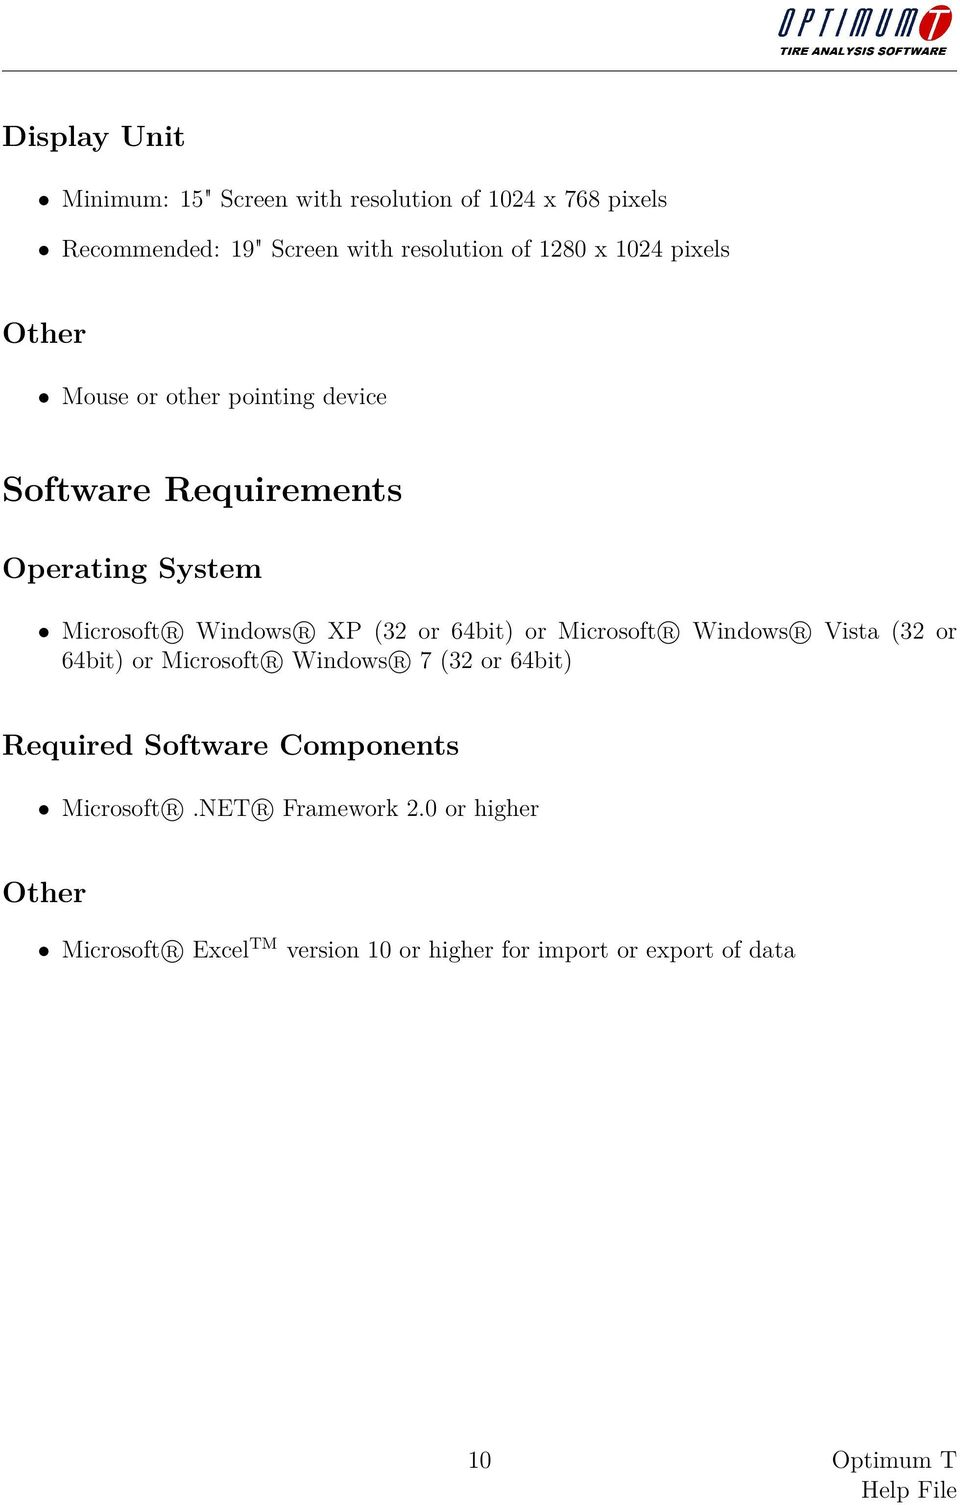 64bit) or Microsoft R Windows R Vista (32 or 64bit) or Microsoft R Windows R 7 (32 or 64bit) Required Software Components